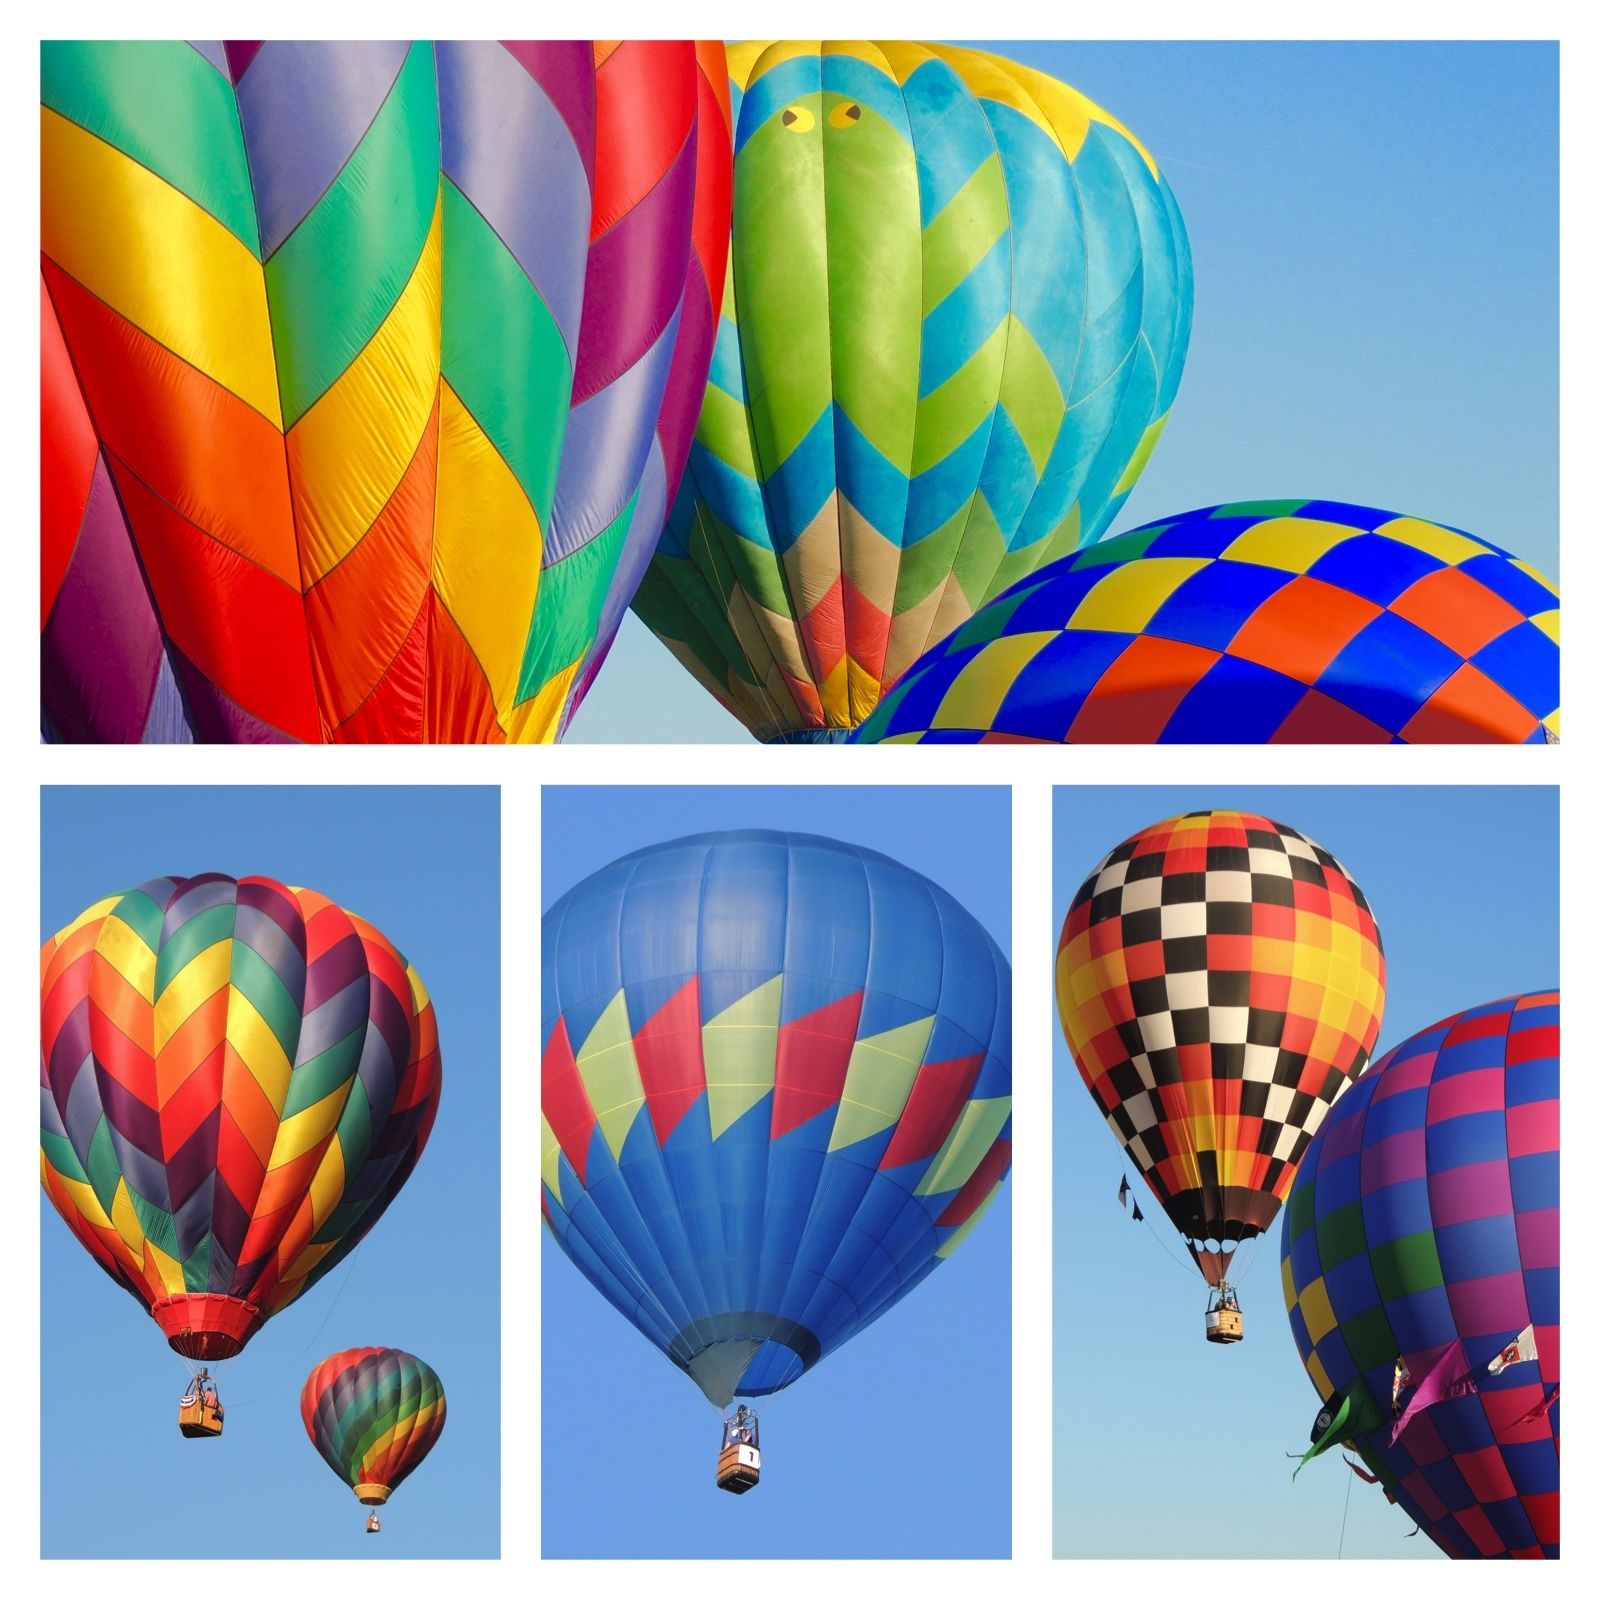 They were hosting the Freedom Balloon Fest in Fuquay